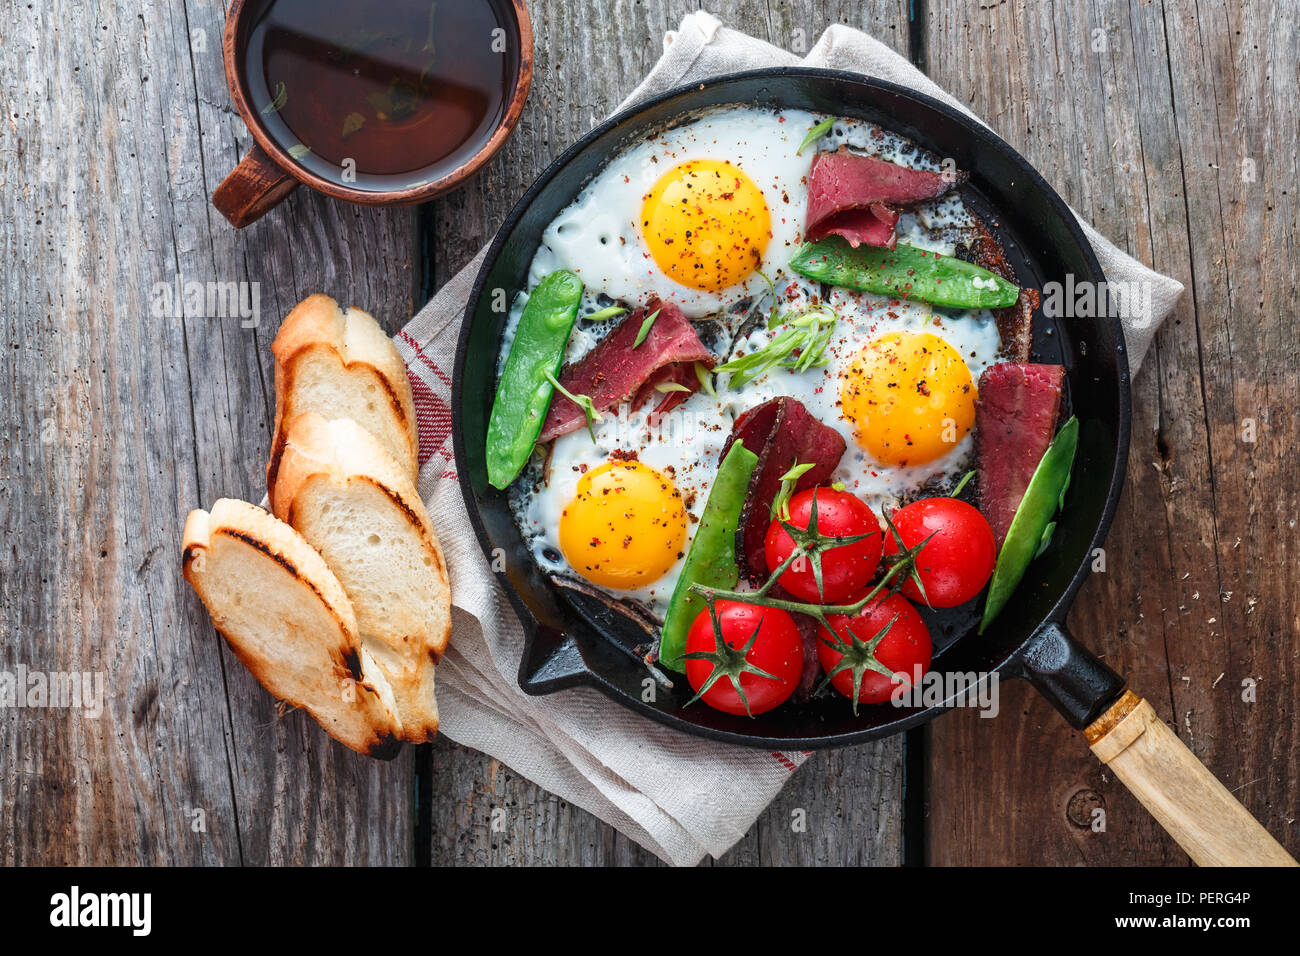 Fried eggs in a frying pan with cherry tomatoes, green peas and pastrami. Copyspace - Stock Image